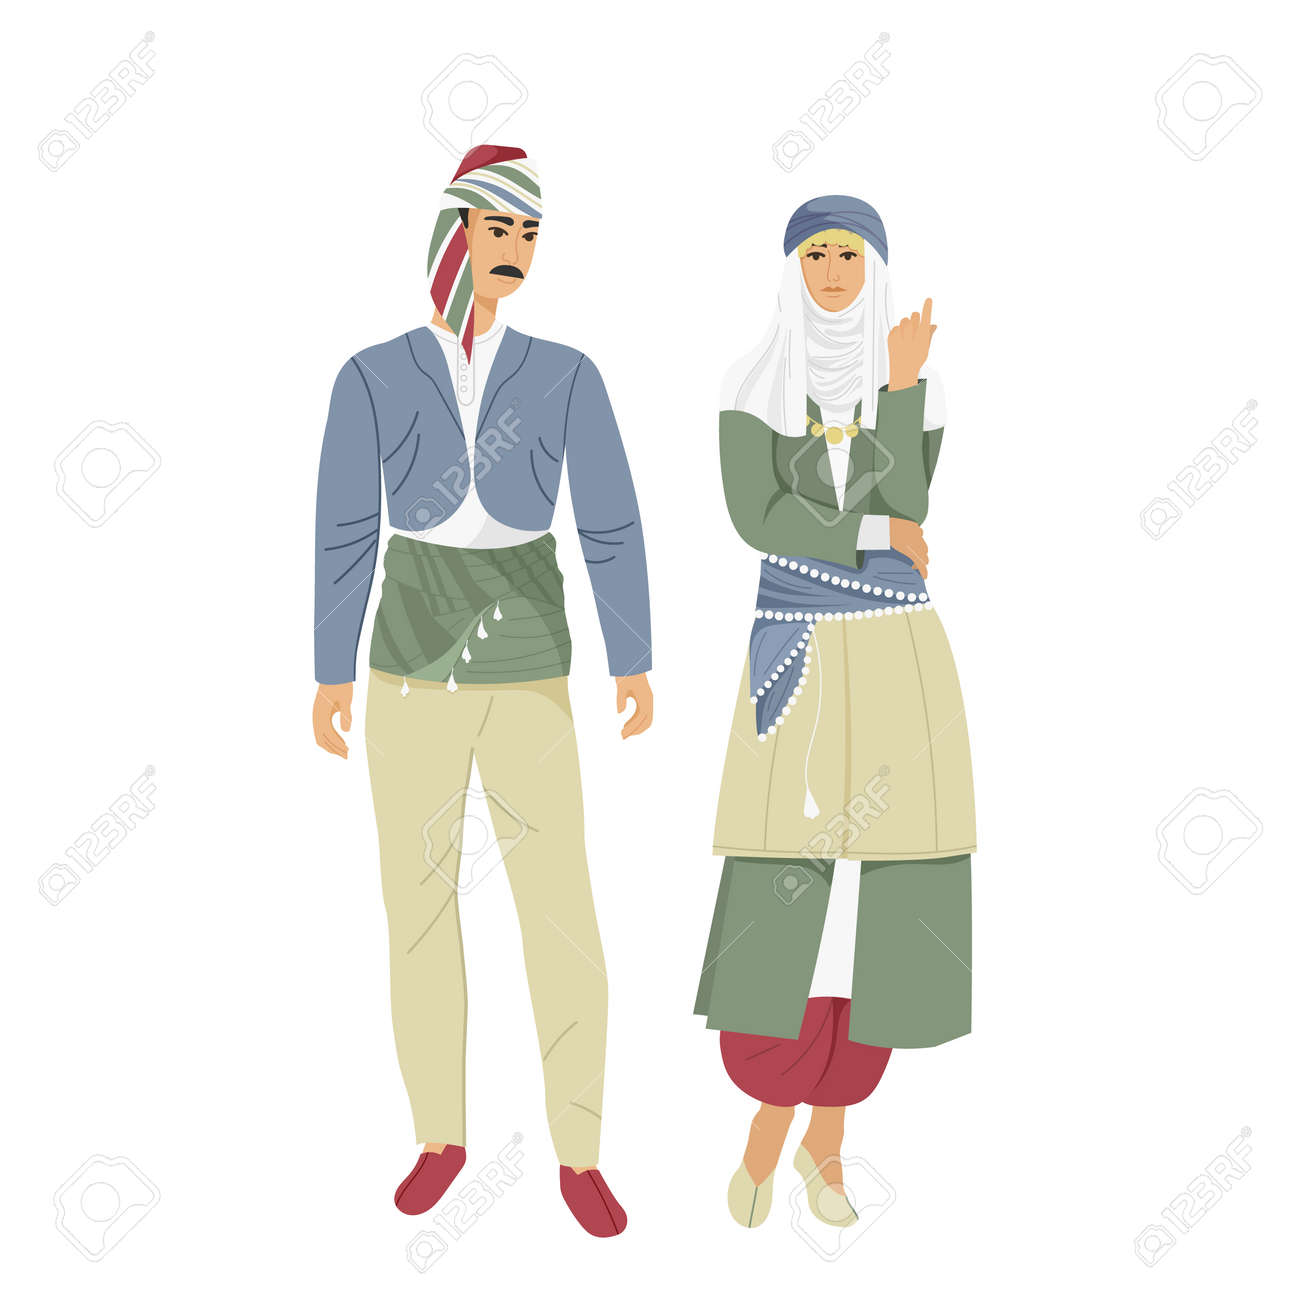 Man and woman in traditional Turkish costume, - 169605822